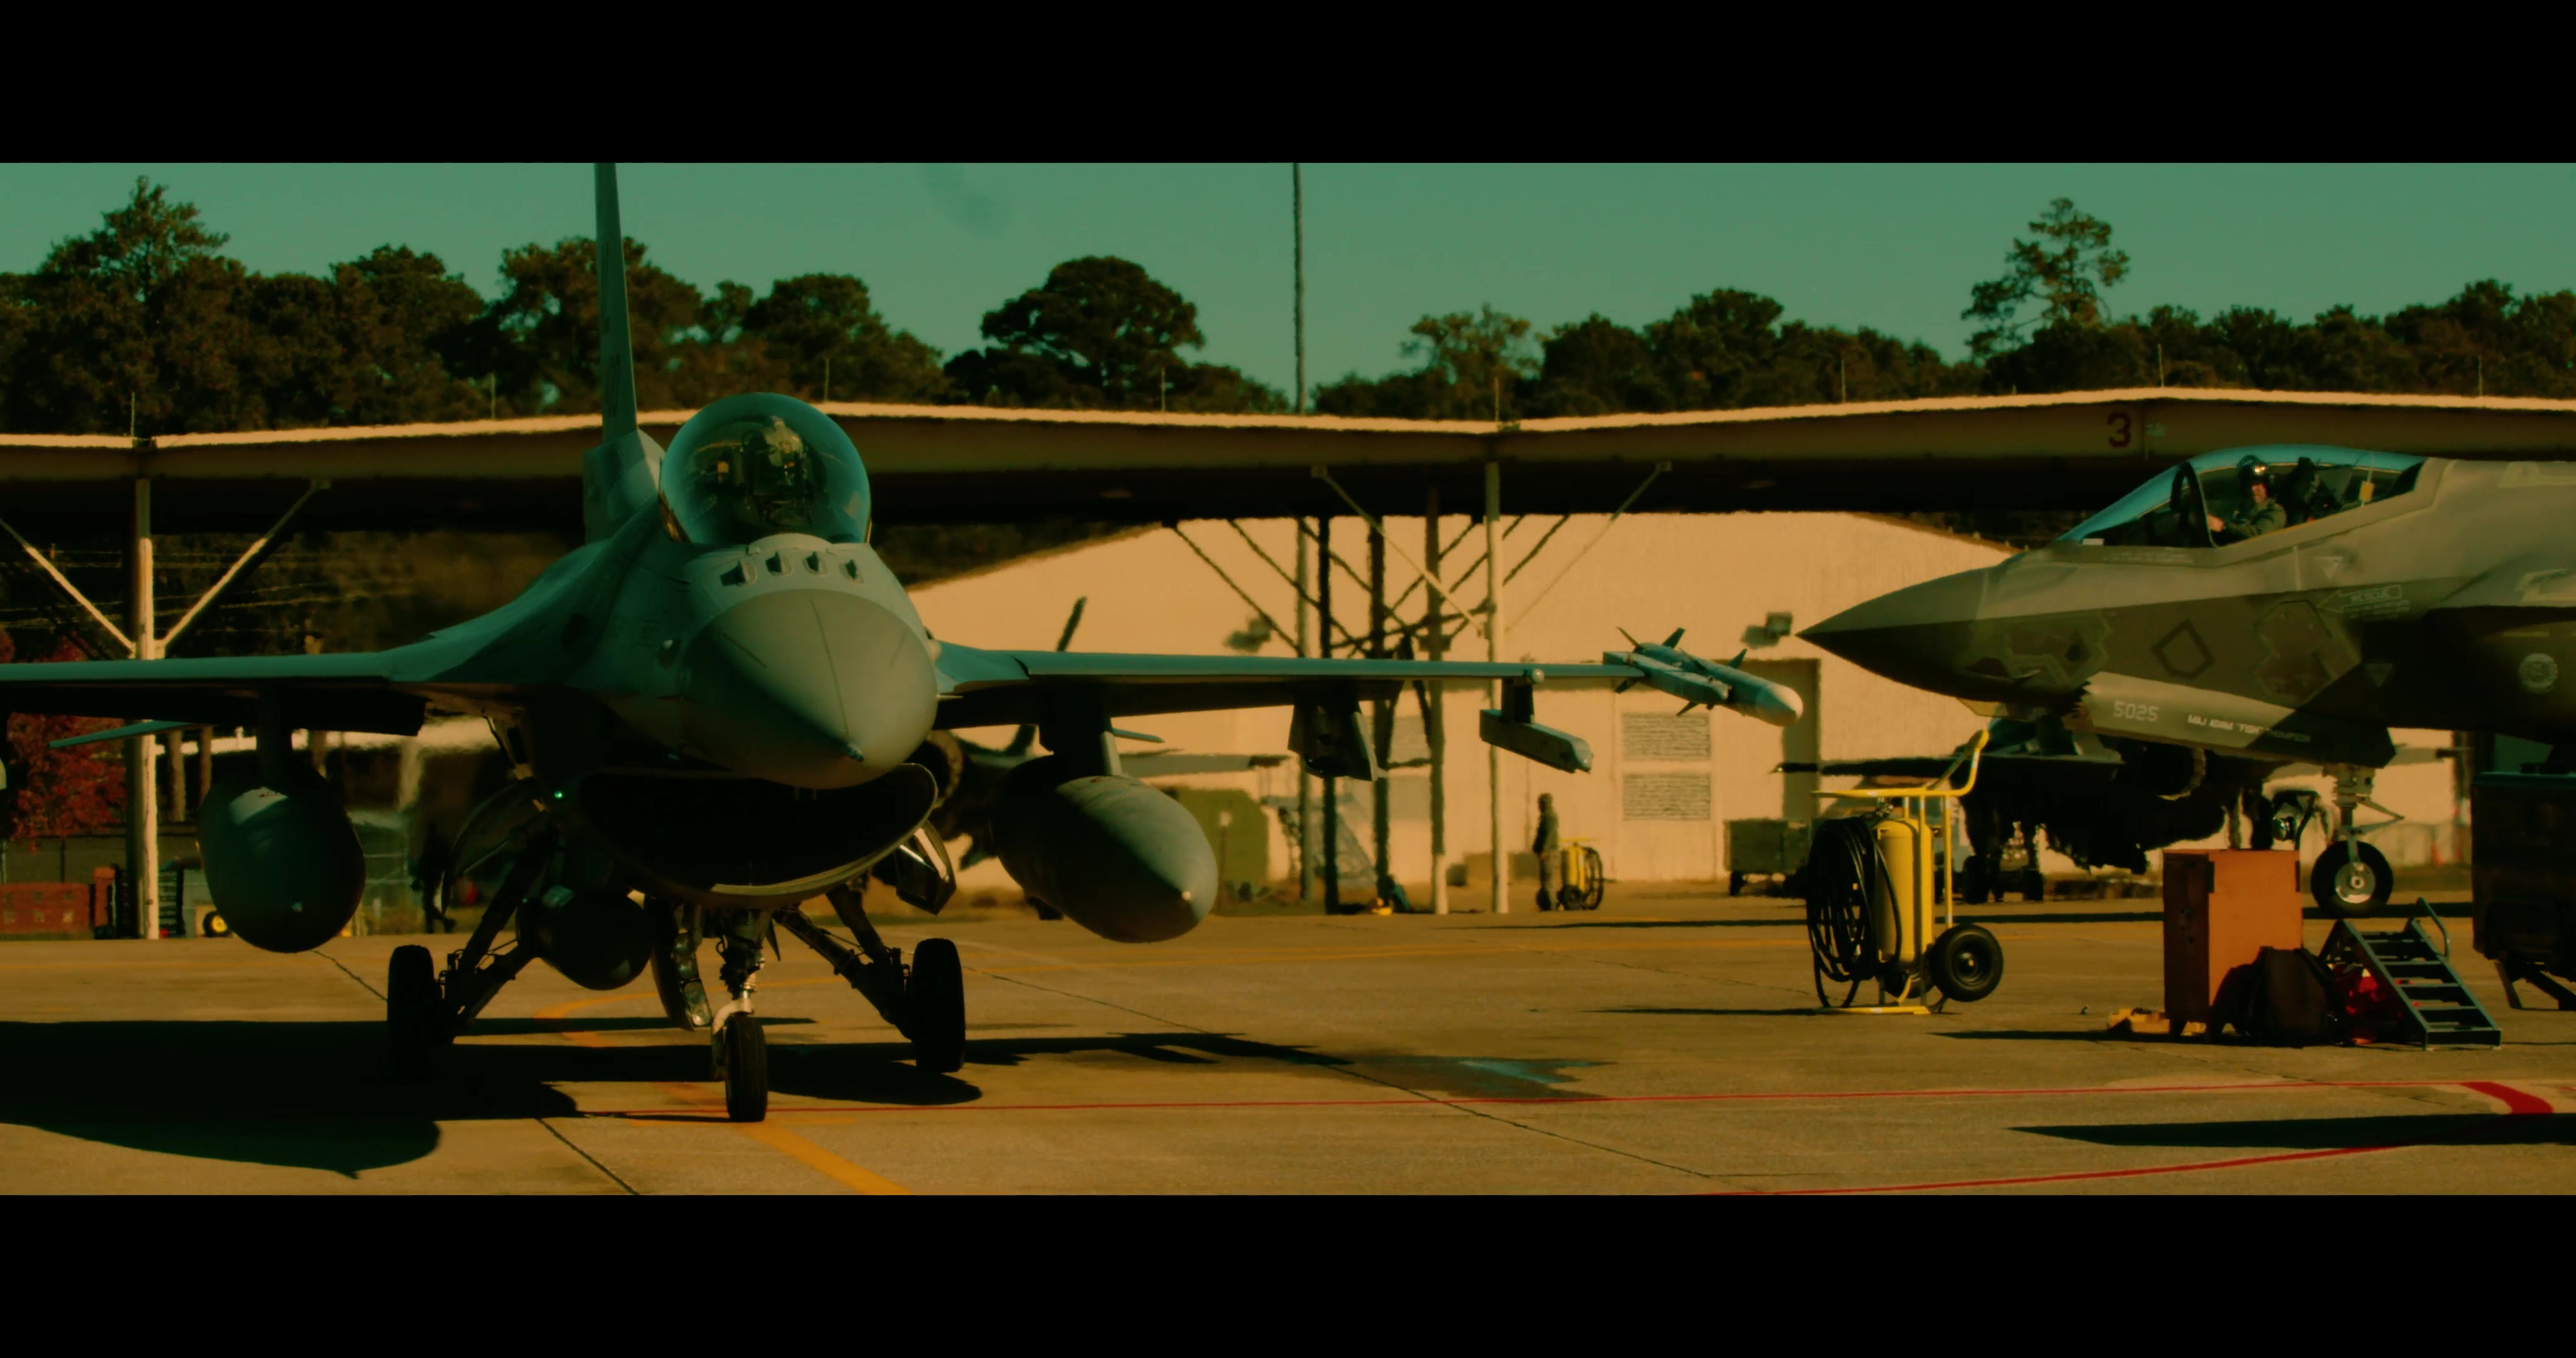 Mission video for the Red Tails at Dannelly Field, Alabama. The primary mission of the wing is to deliver combat ready airmen and aircraft for rapid deployment anytime, anywhere.